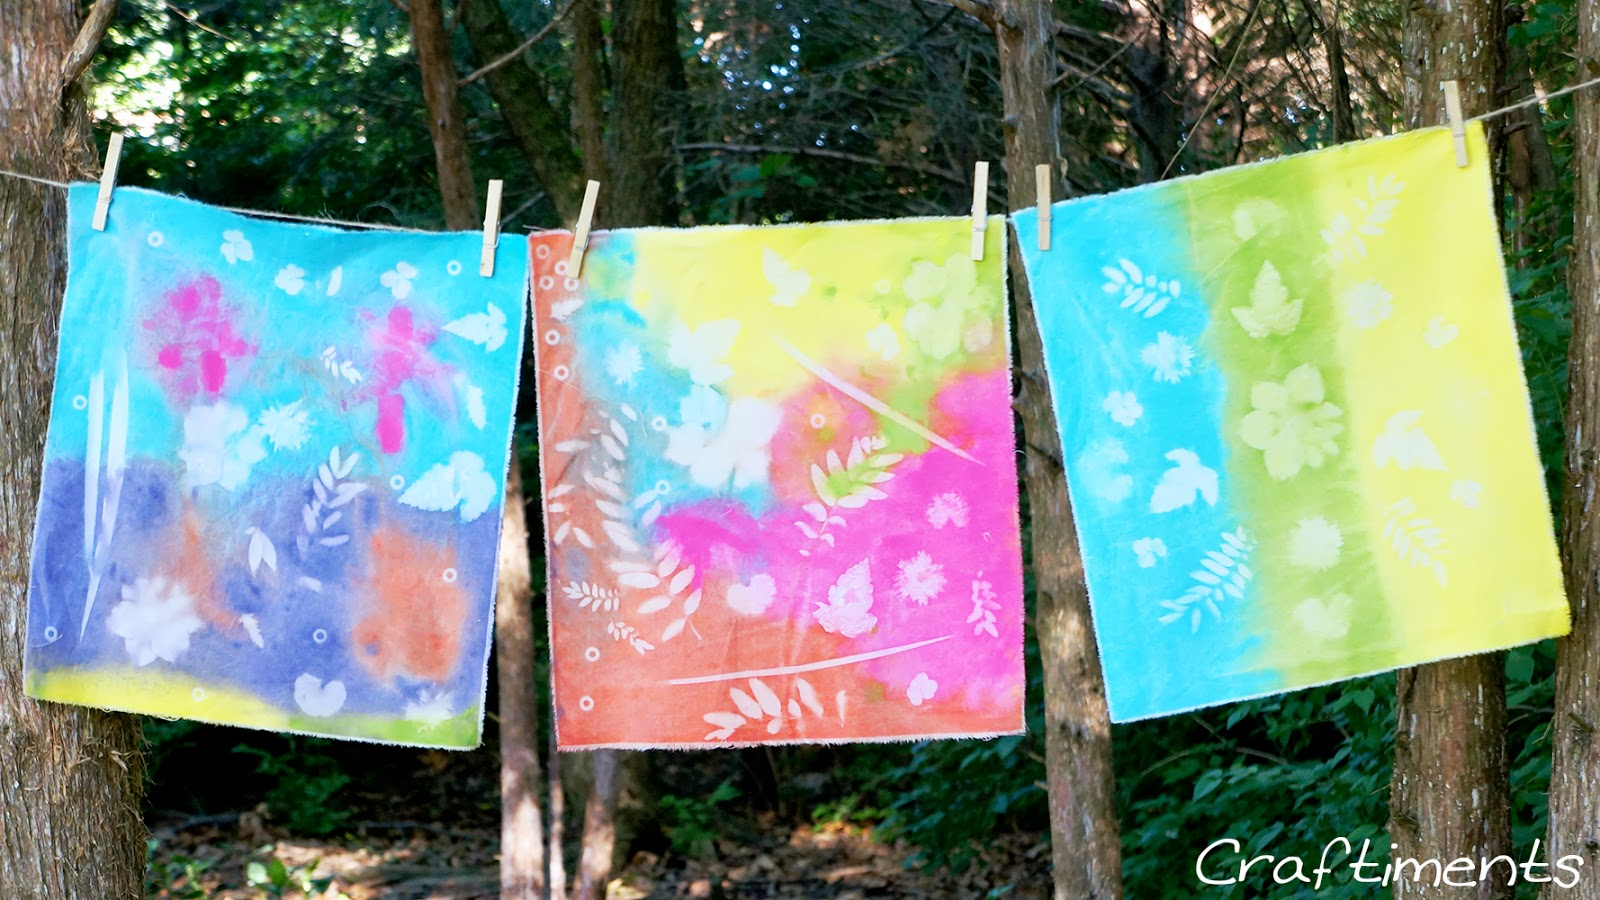 Craftiments:  Tutorial for faux sun prints on fabric using acrylic craft paint